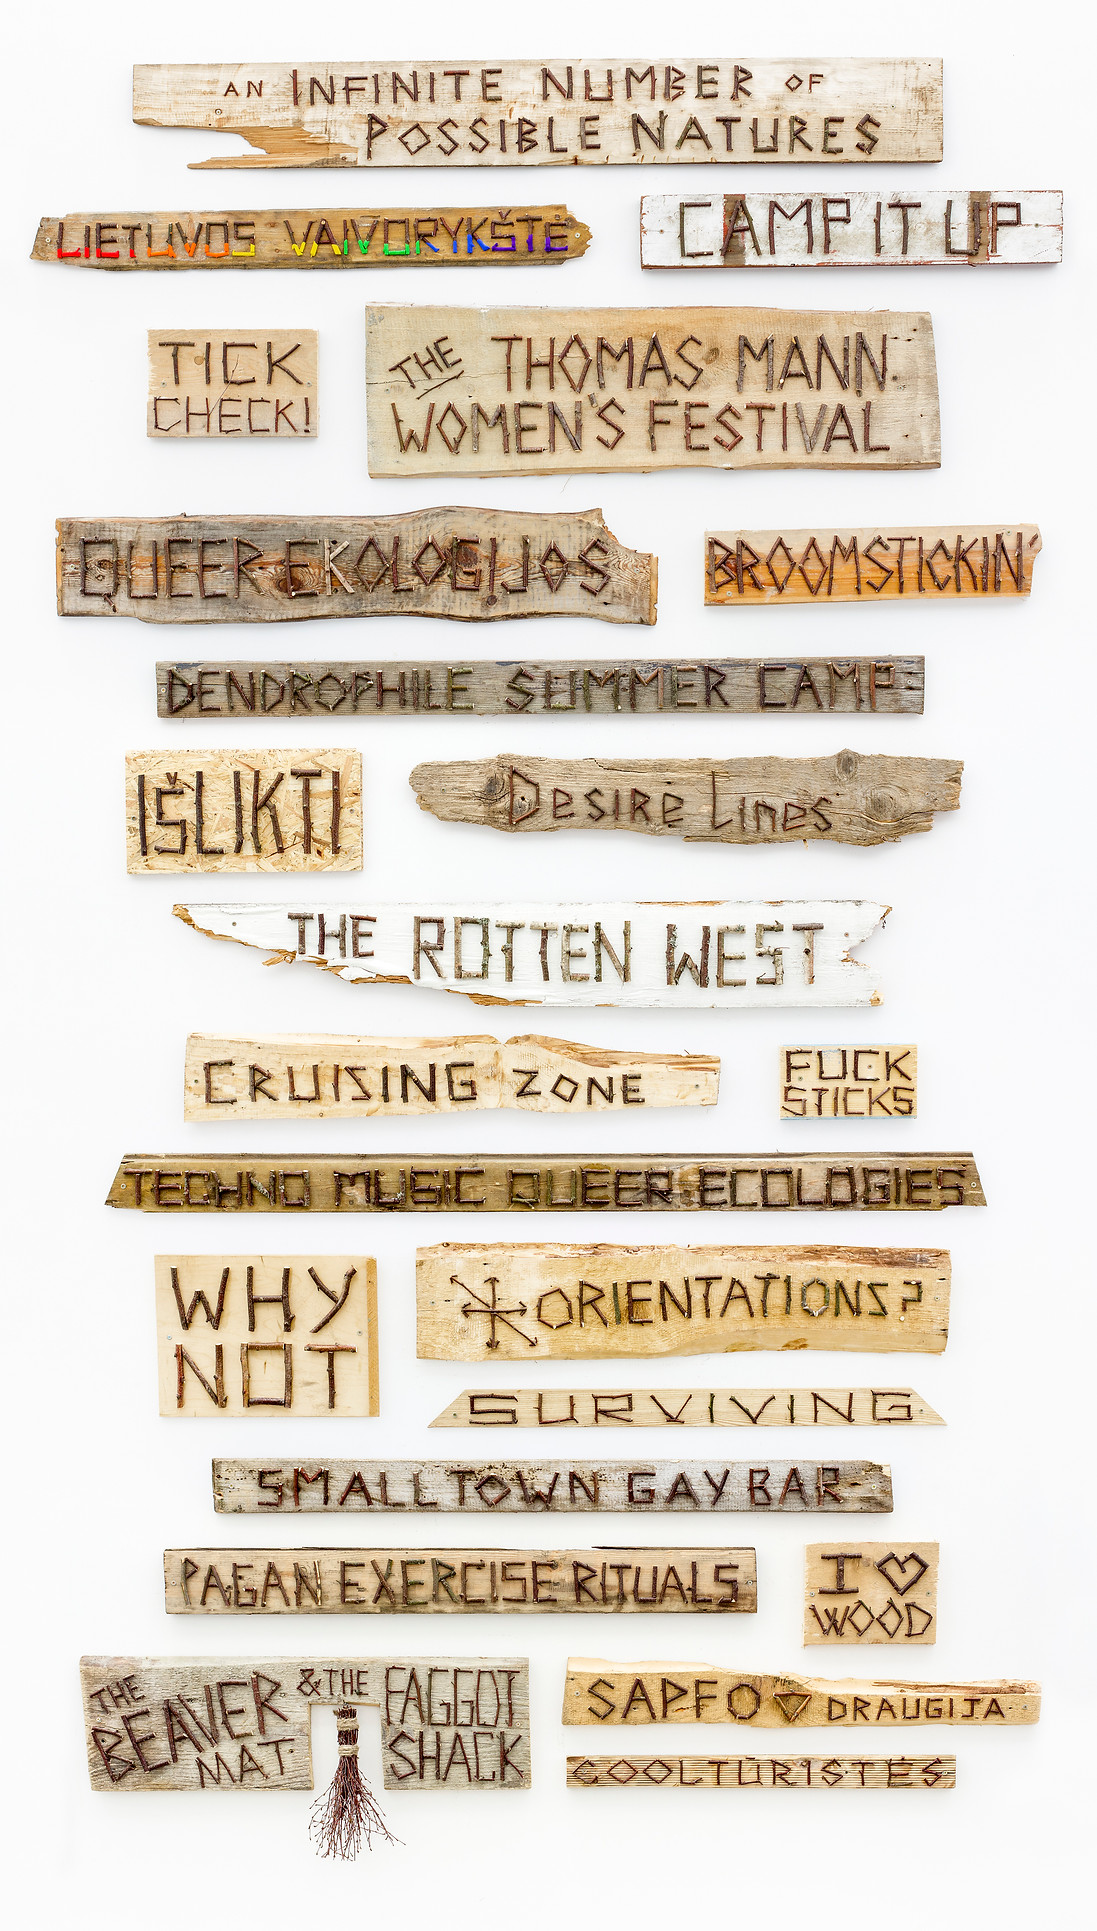 Digital compilation from The Beaver Mat & The Fag(g)ot Shack from 2014 by Hannah & Helen. The image features a series of wooden panels with phrases.